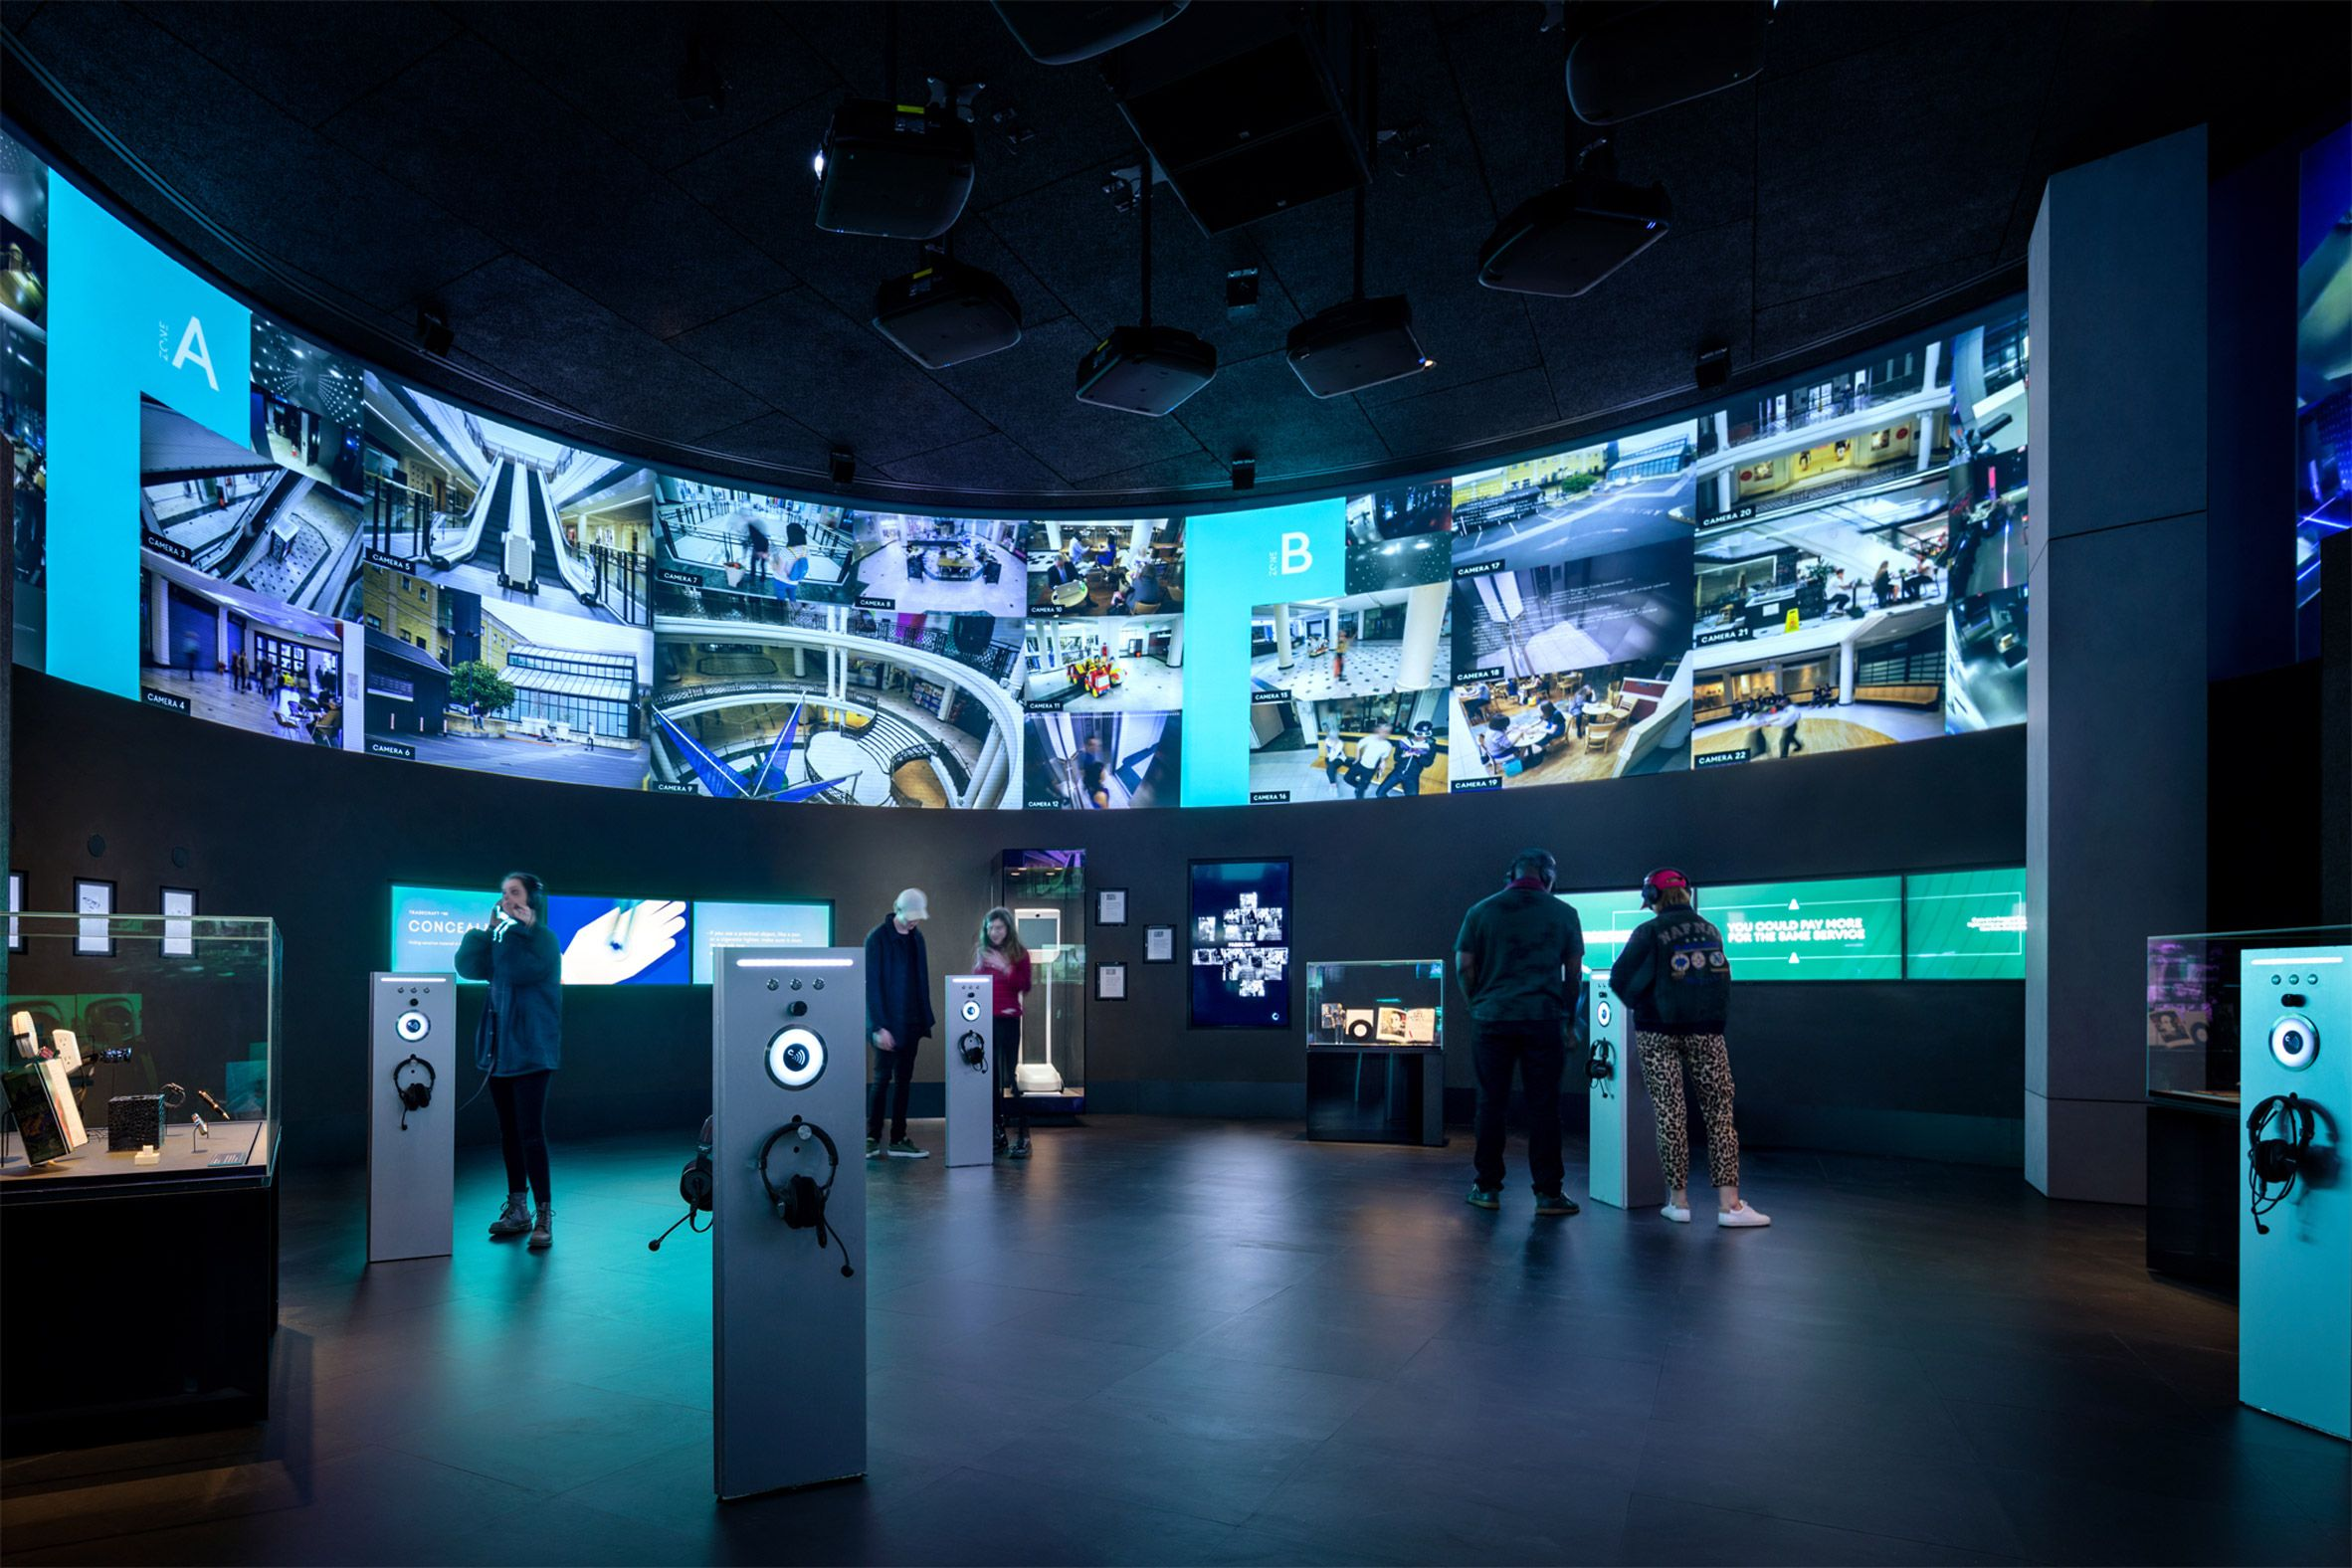 Opening today, the interactive Spyscape museum occupies a renovated ...